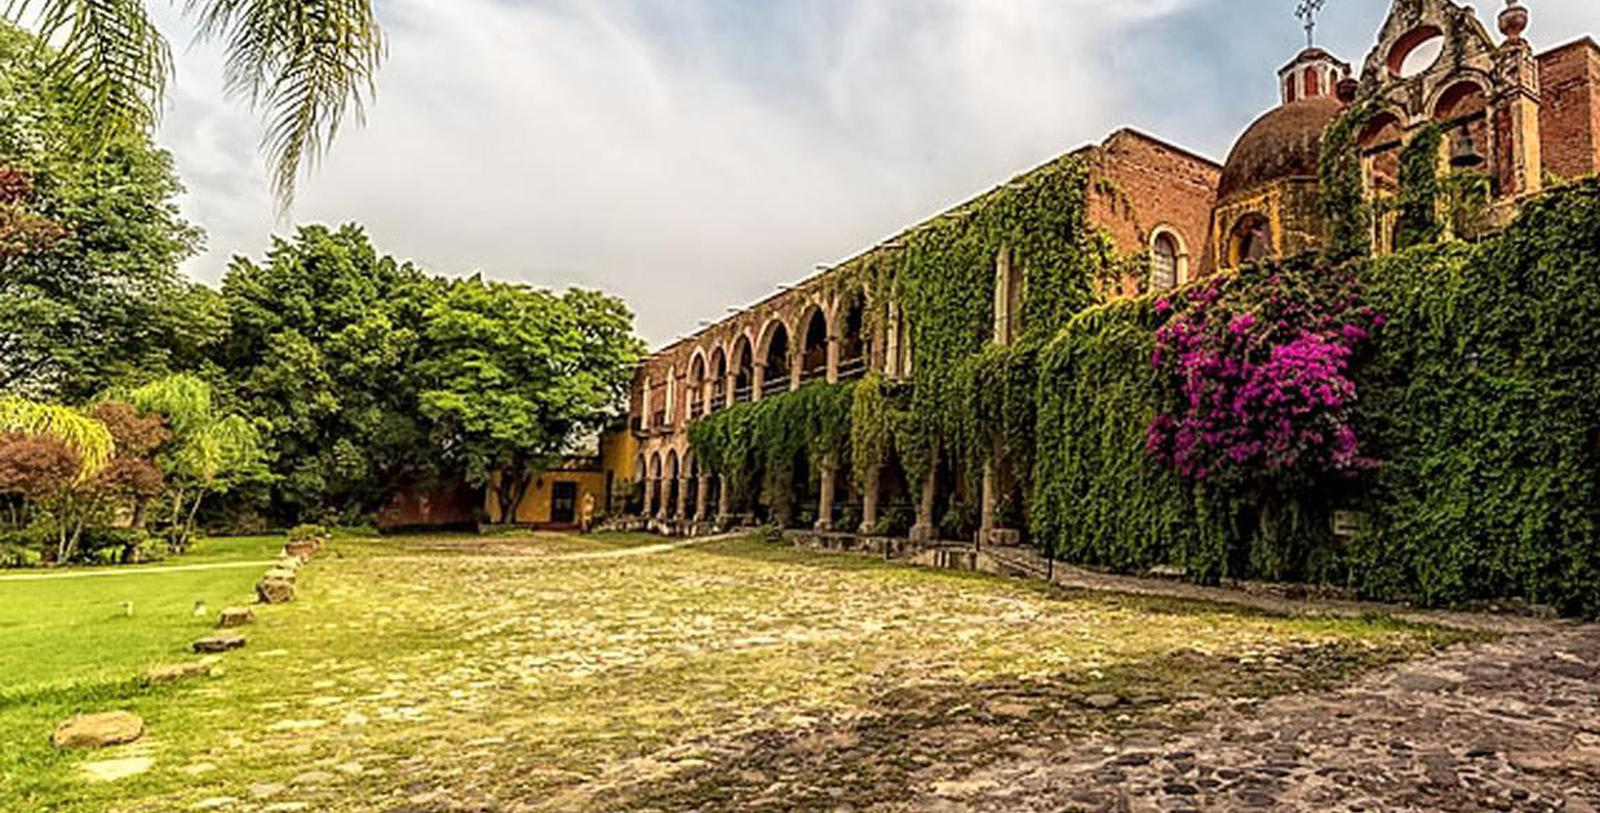 Image of Terrace & Courtyard, Hacienda el Carmen Hotel & Spa, Ahualulco de Mercado, 1722, Member of Historic Hotels Worldwide, Experience